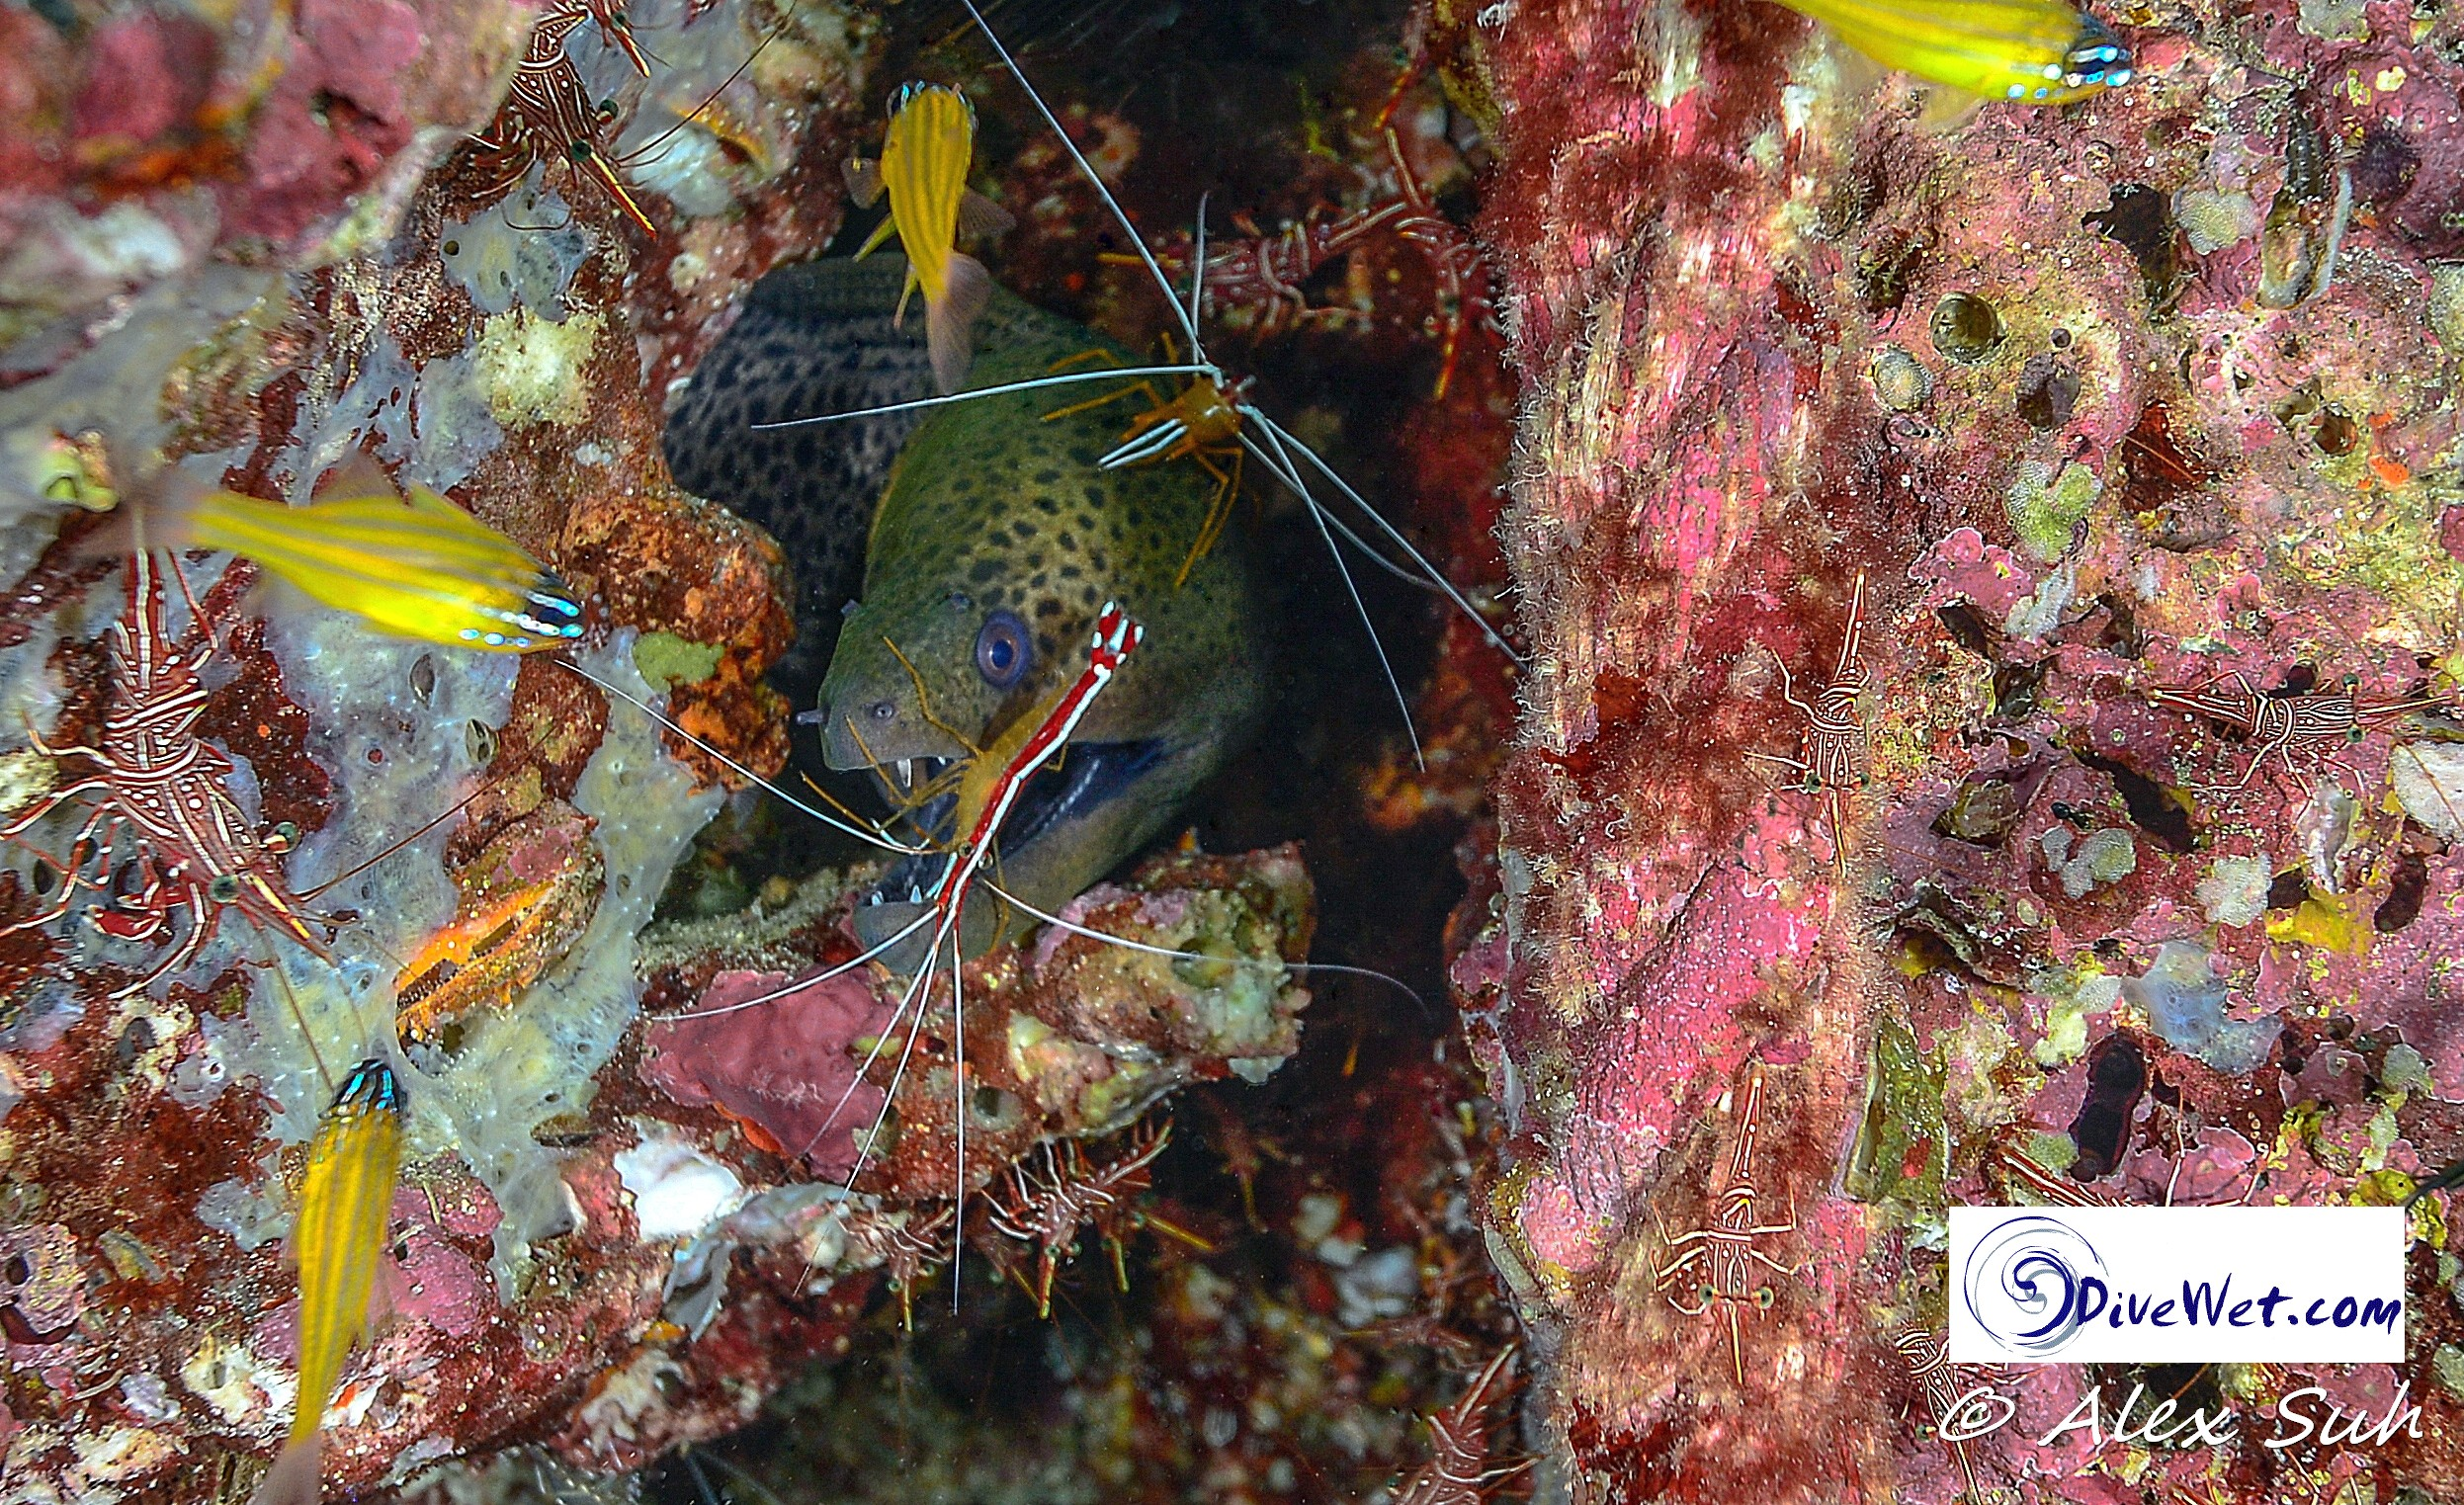 Moray Eel and 2 Cleaner Shrimps